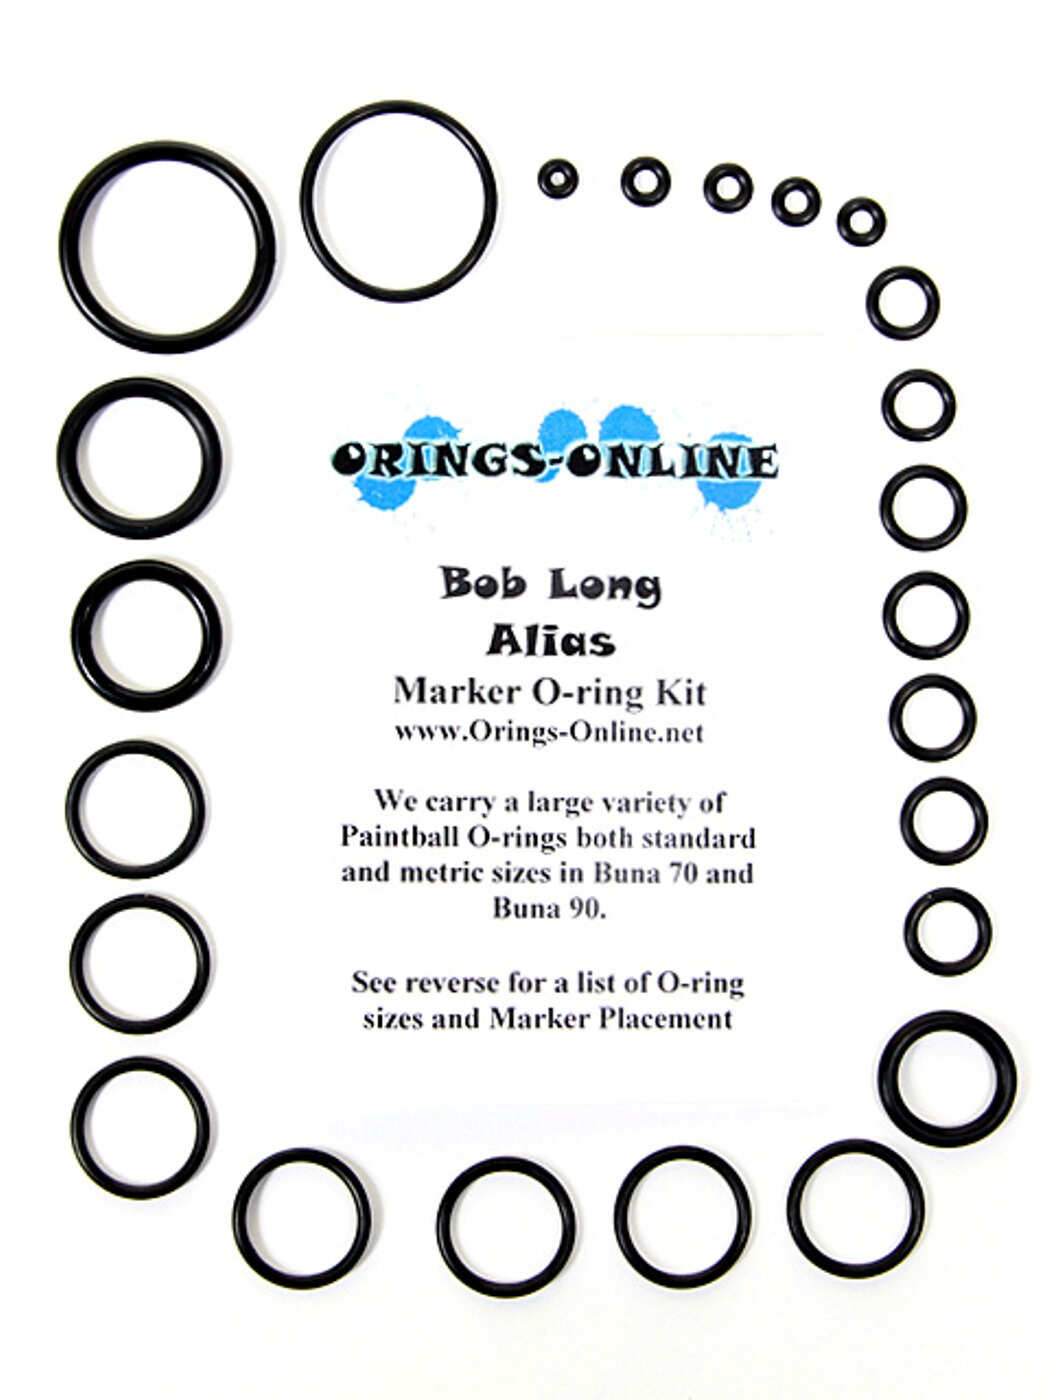 Bob Long Alias Marker O-ring Kit